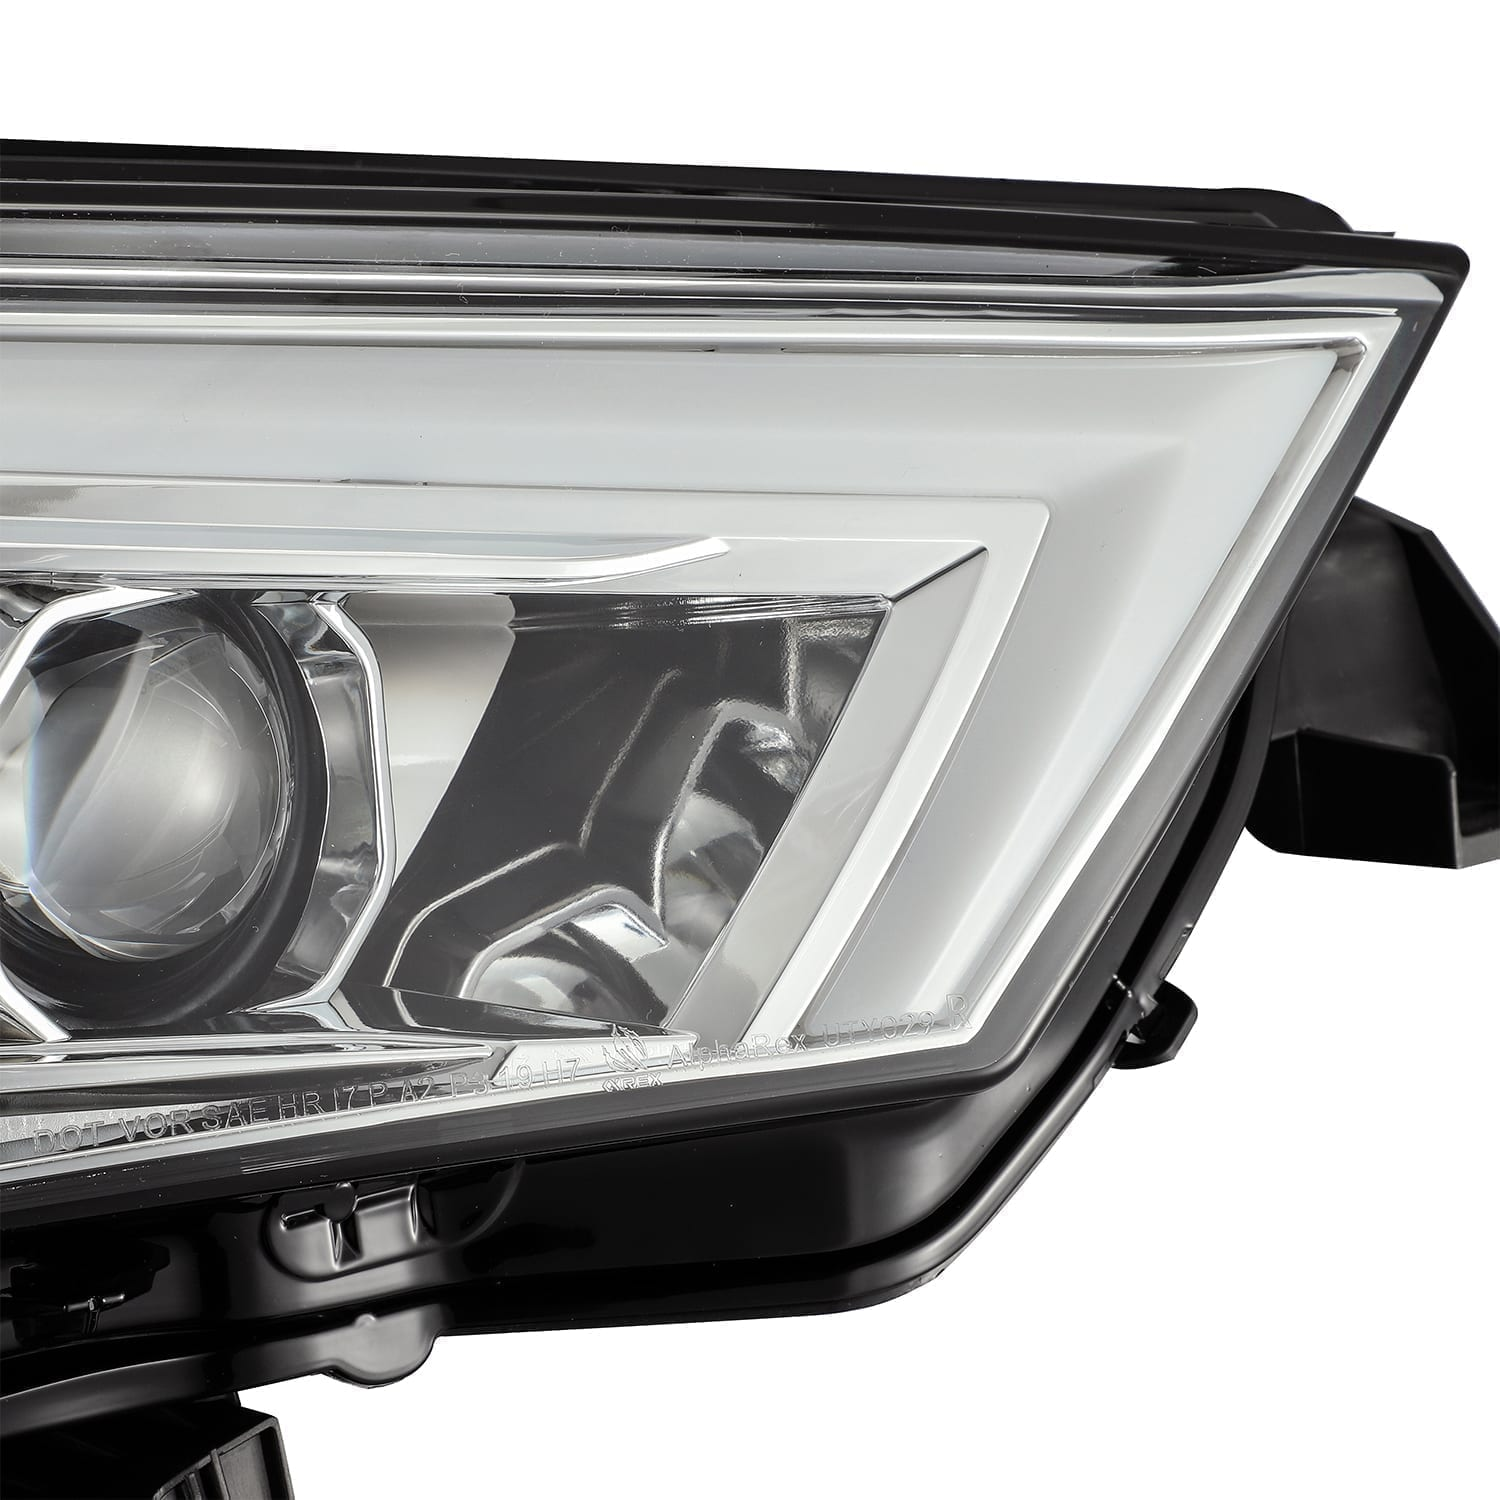 AlphaRex -PRO Series Projector Headlights Chrome - Toyota 4Runner 5th Gen 2014-2021 - 4x4 Runners